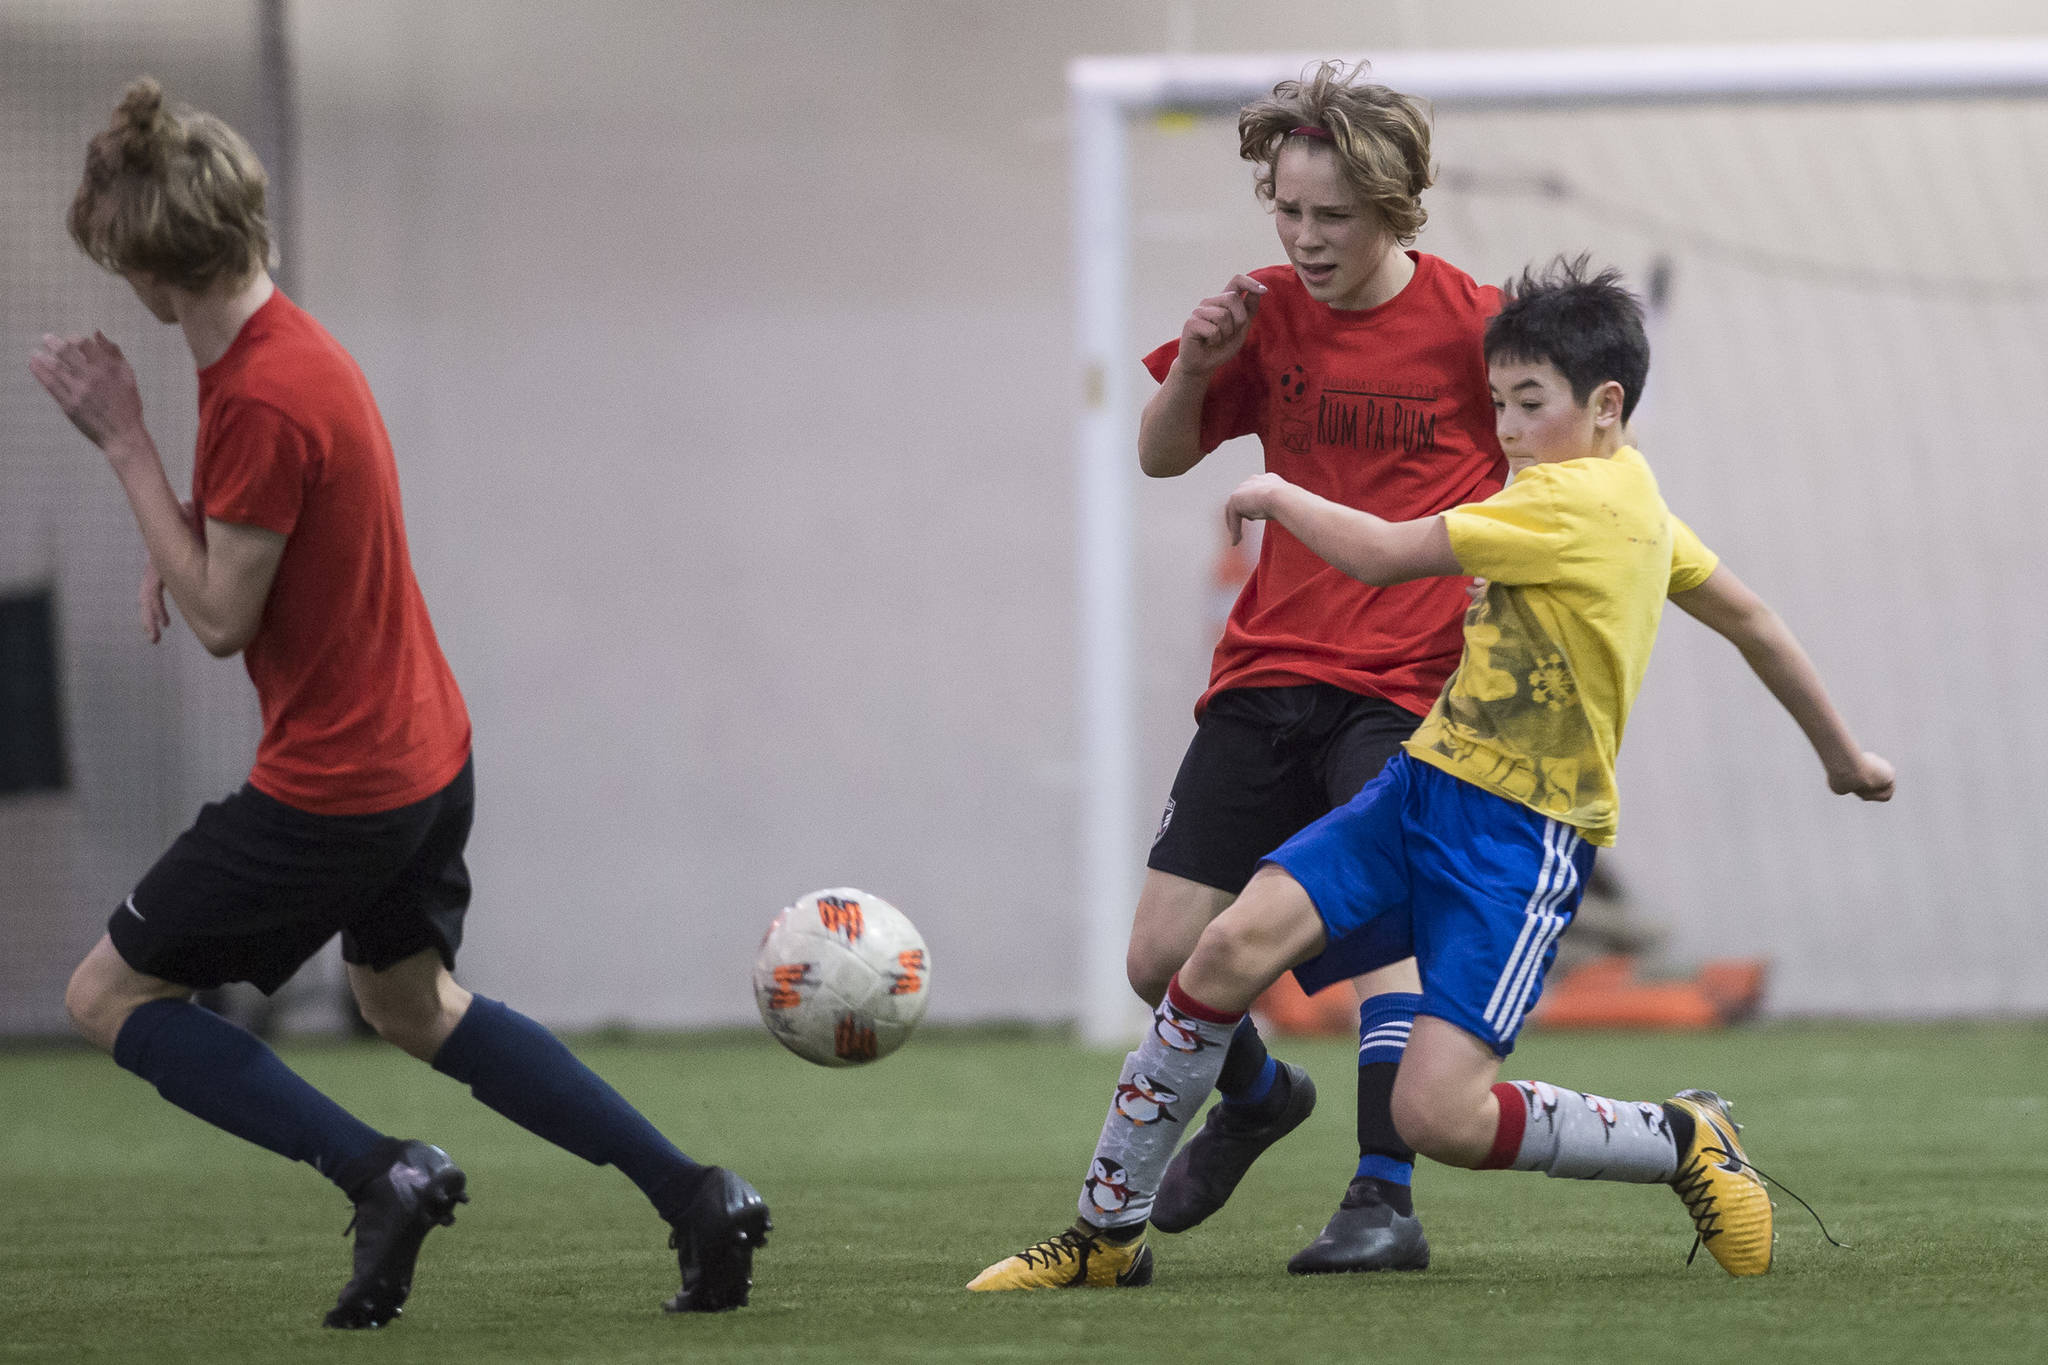 IceKickles play against the Rum Pa Pum at the annual Holiday Cup Soccer Tournament at the Wells Fargo Dimond Park Field House on Wednesday, Dec. 26, 2018. (Michael Penn | Juneau Empire)